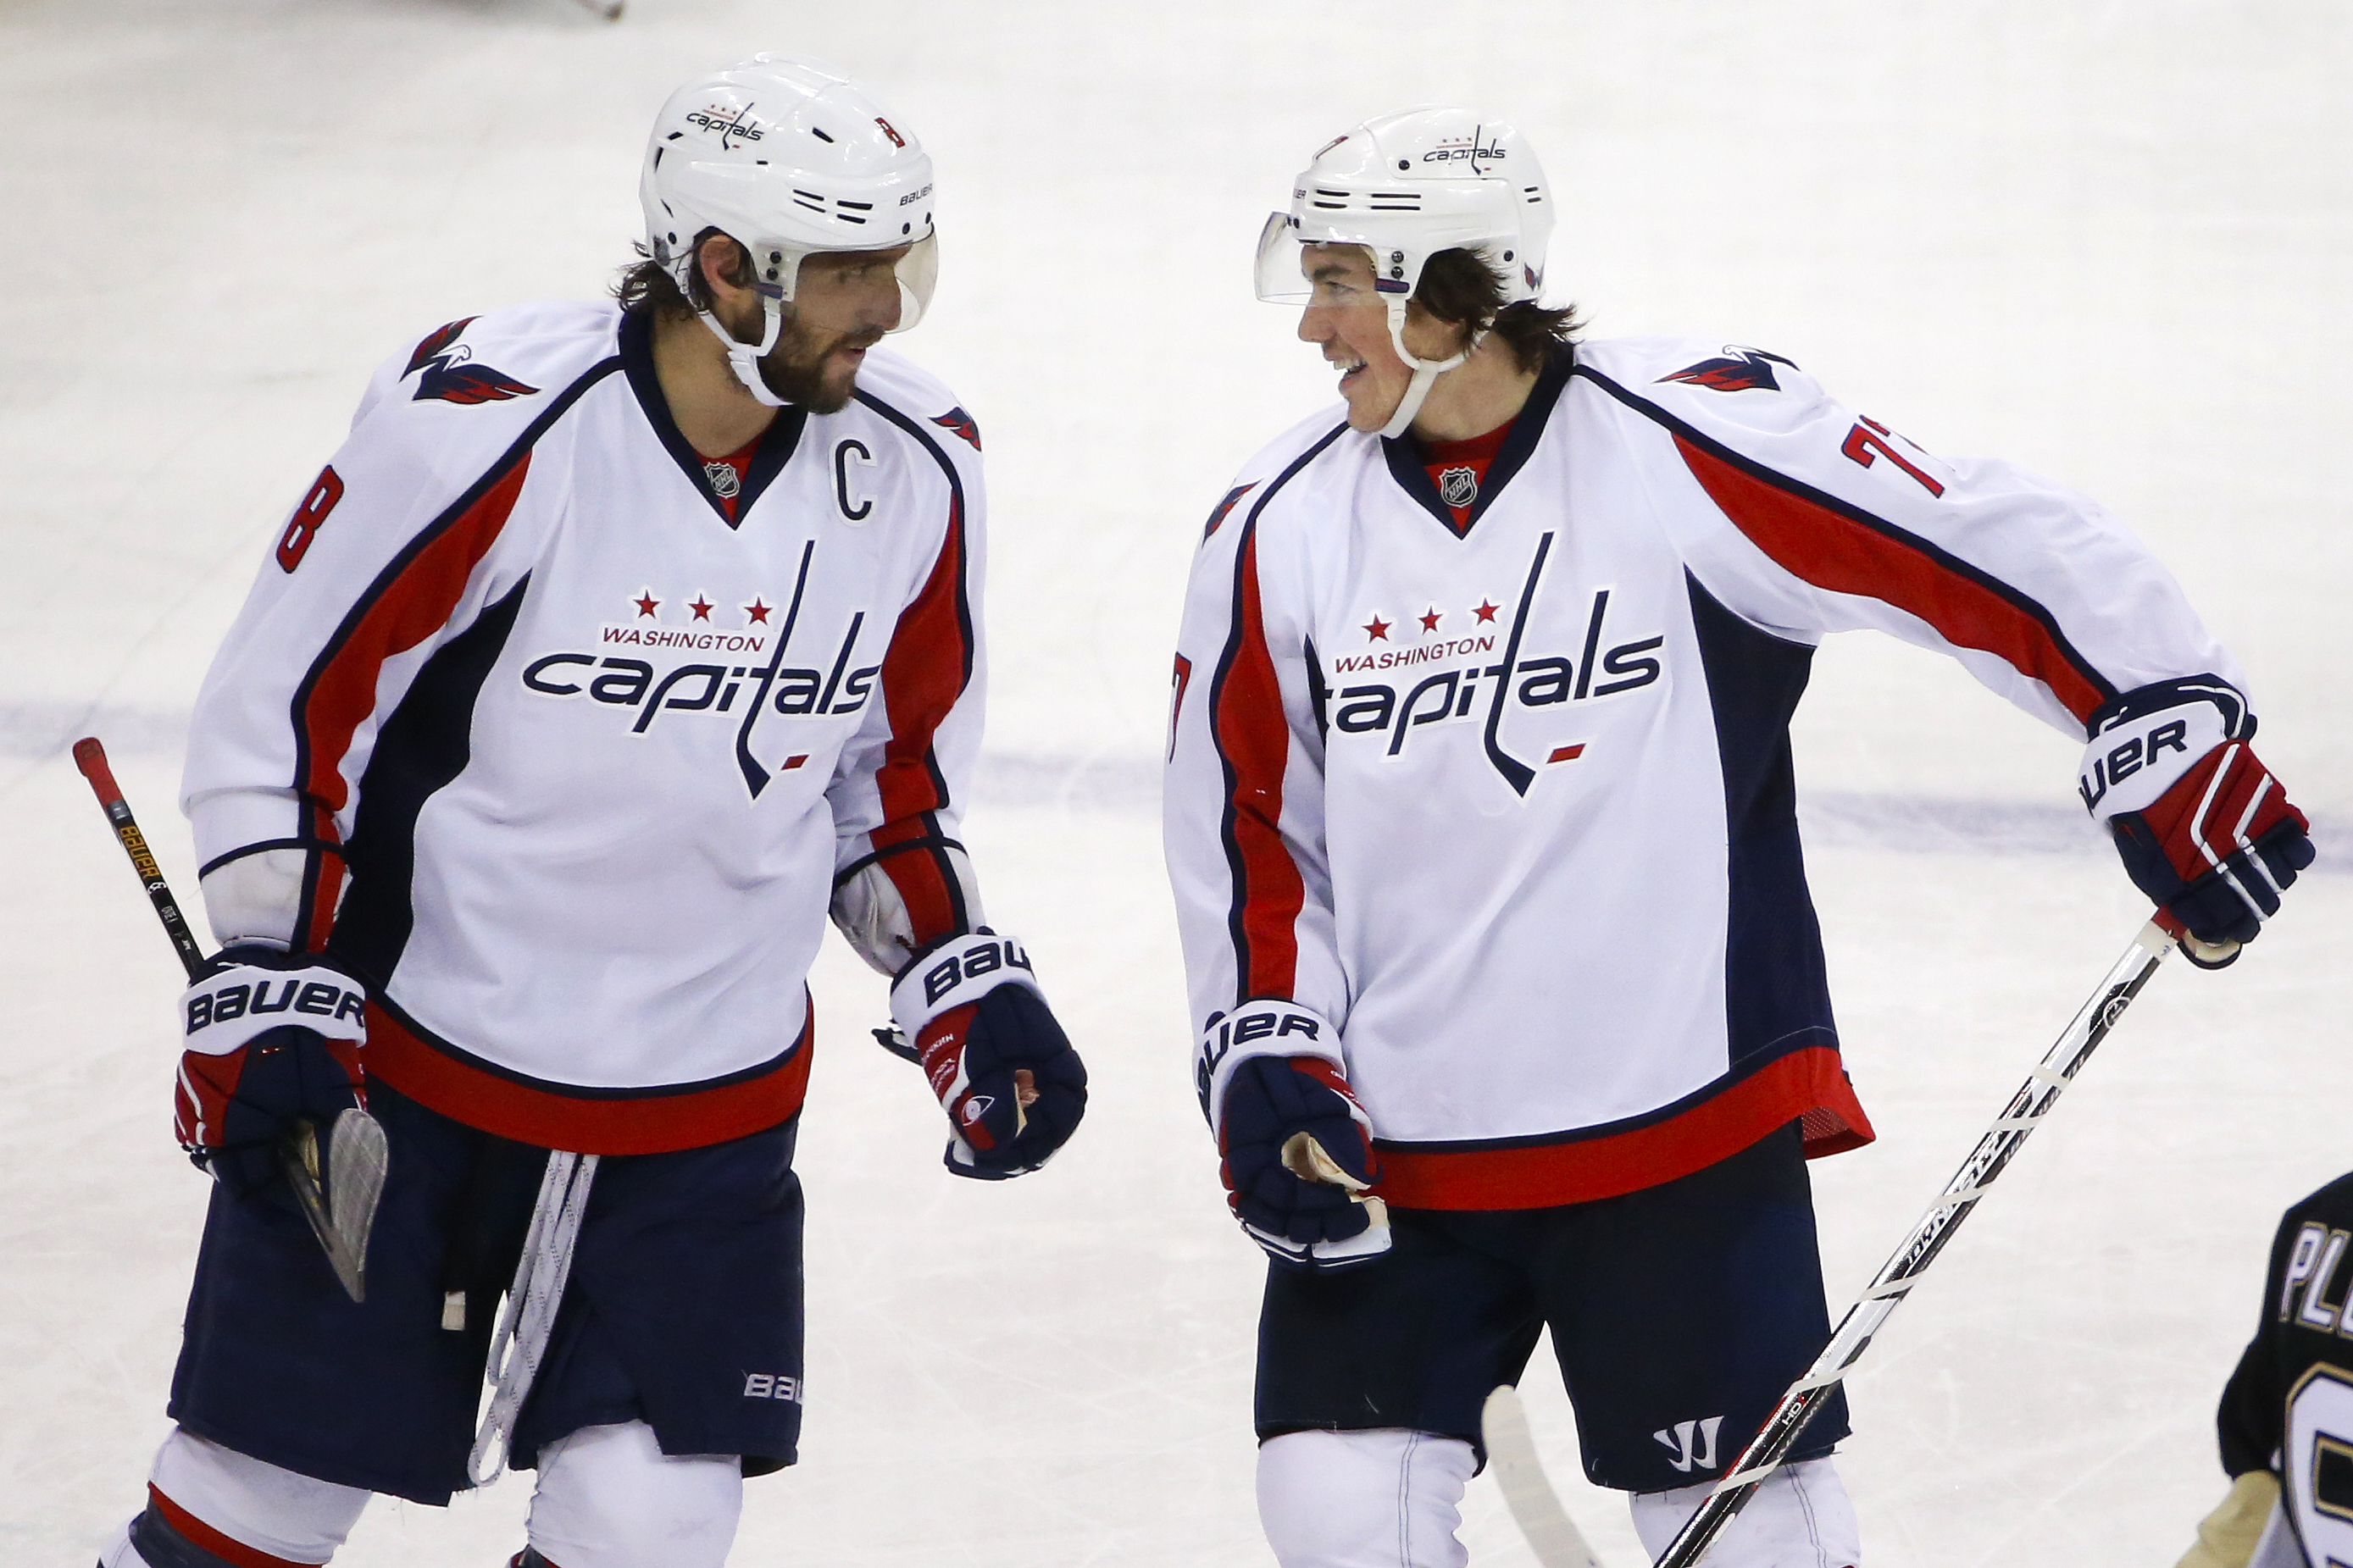 Caps game against Blues holds special meaning for T.J. Oshie